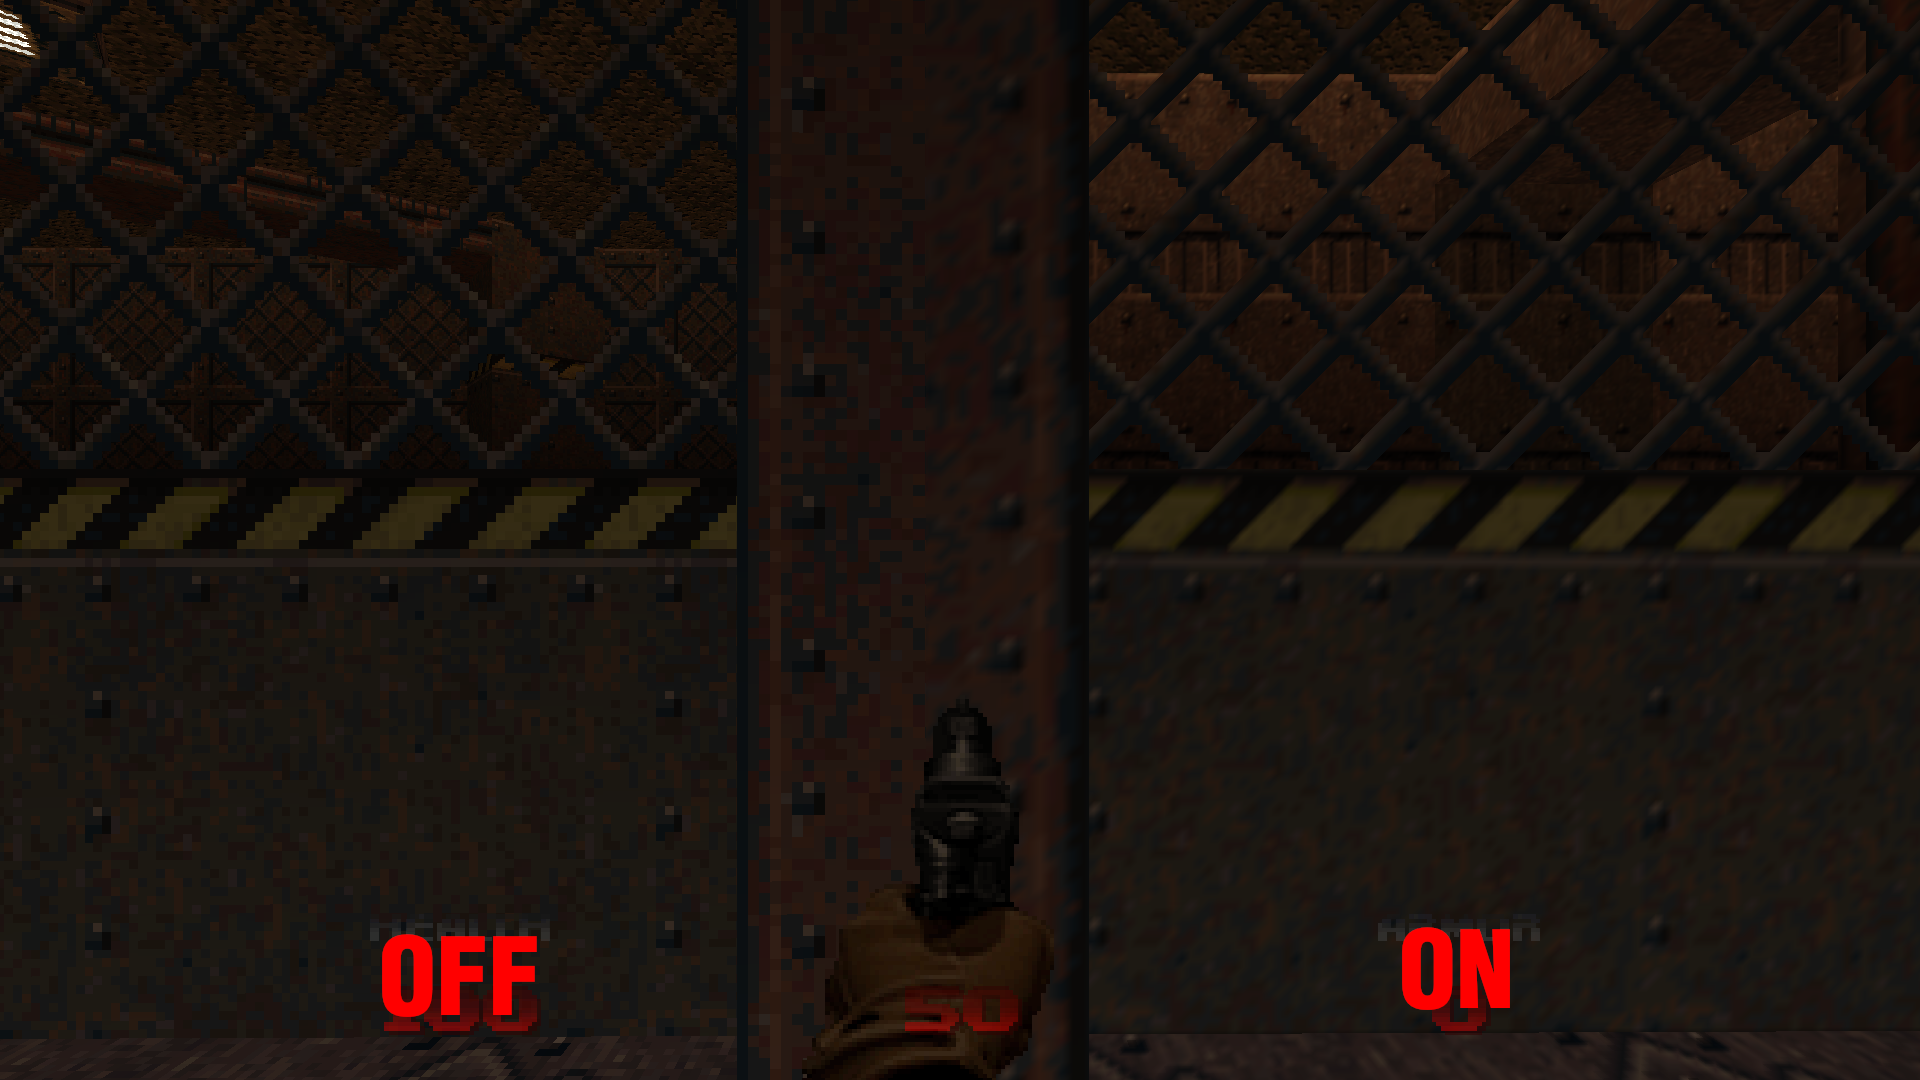 A comparison of the game with and without the 3PointFilter.pk3 addon.